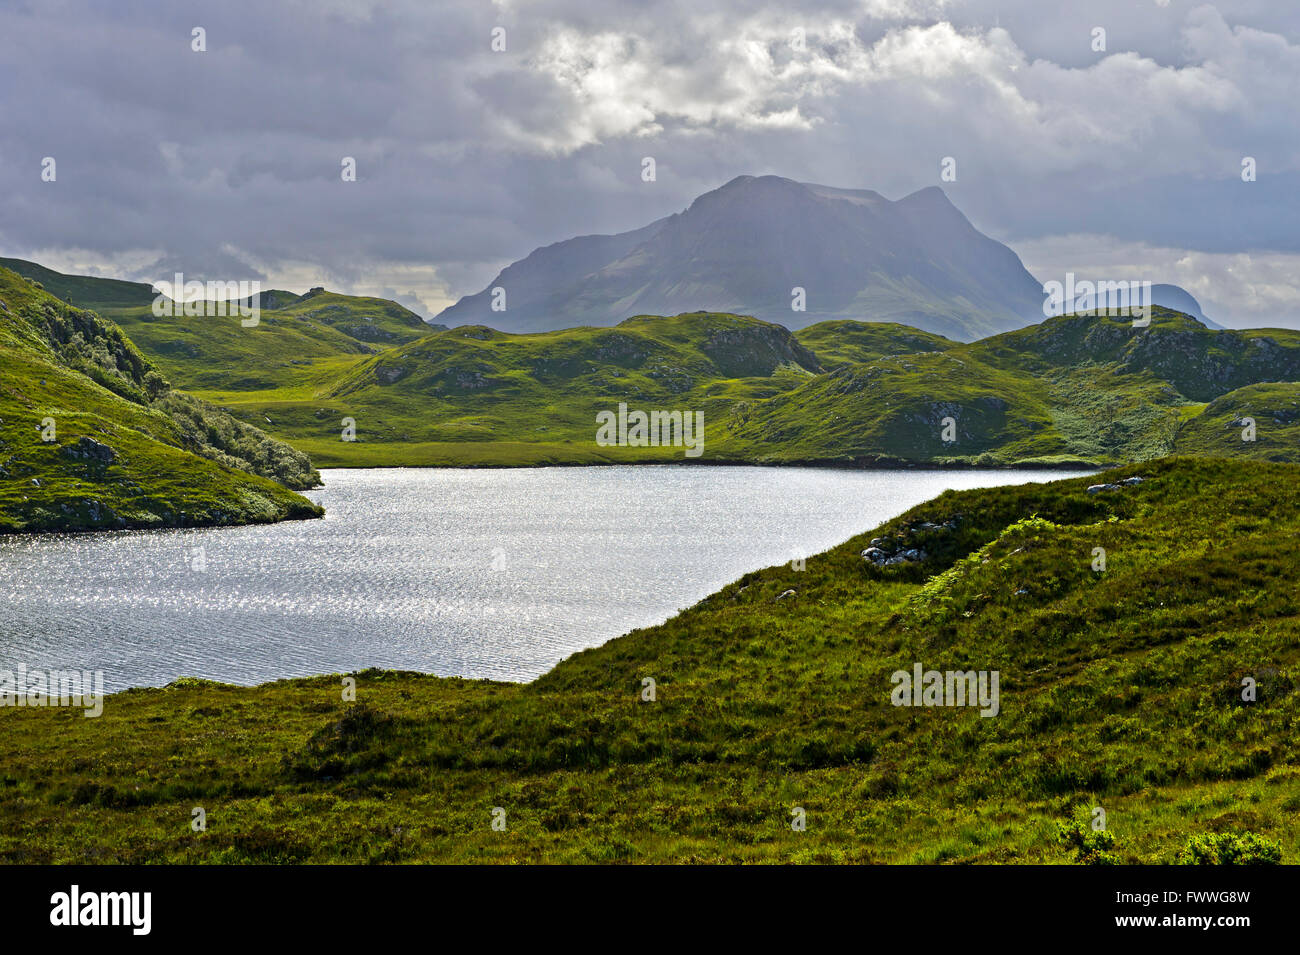 Lake or loch in the Scottish Highlands, Assynt, Scotland, United Kingdom - Stock Image